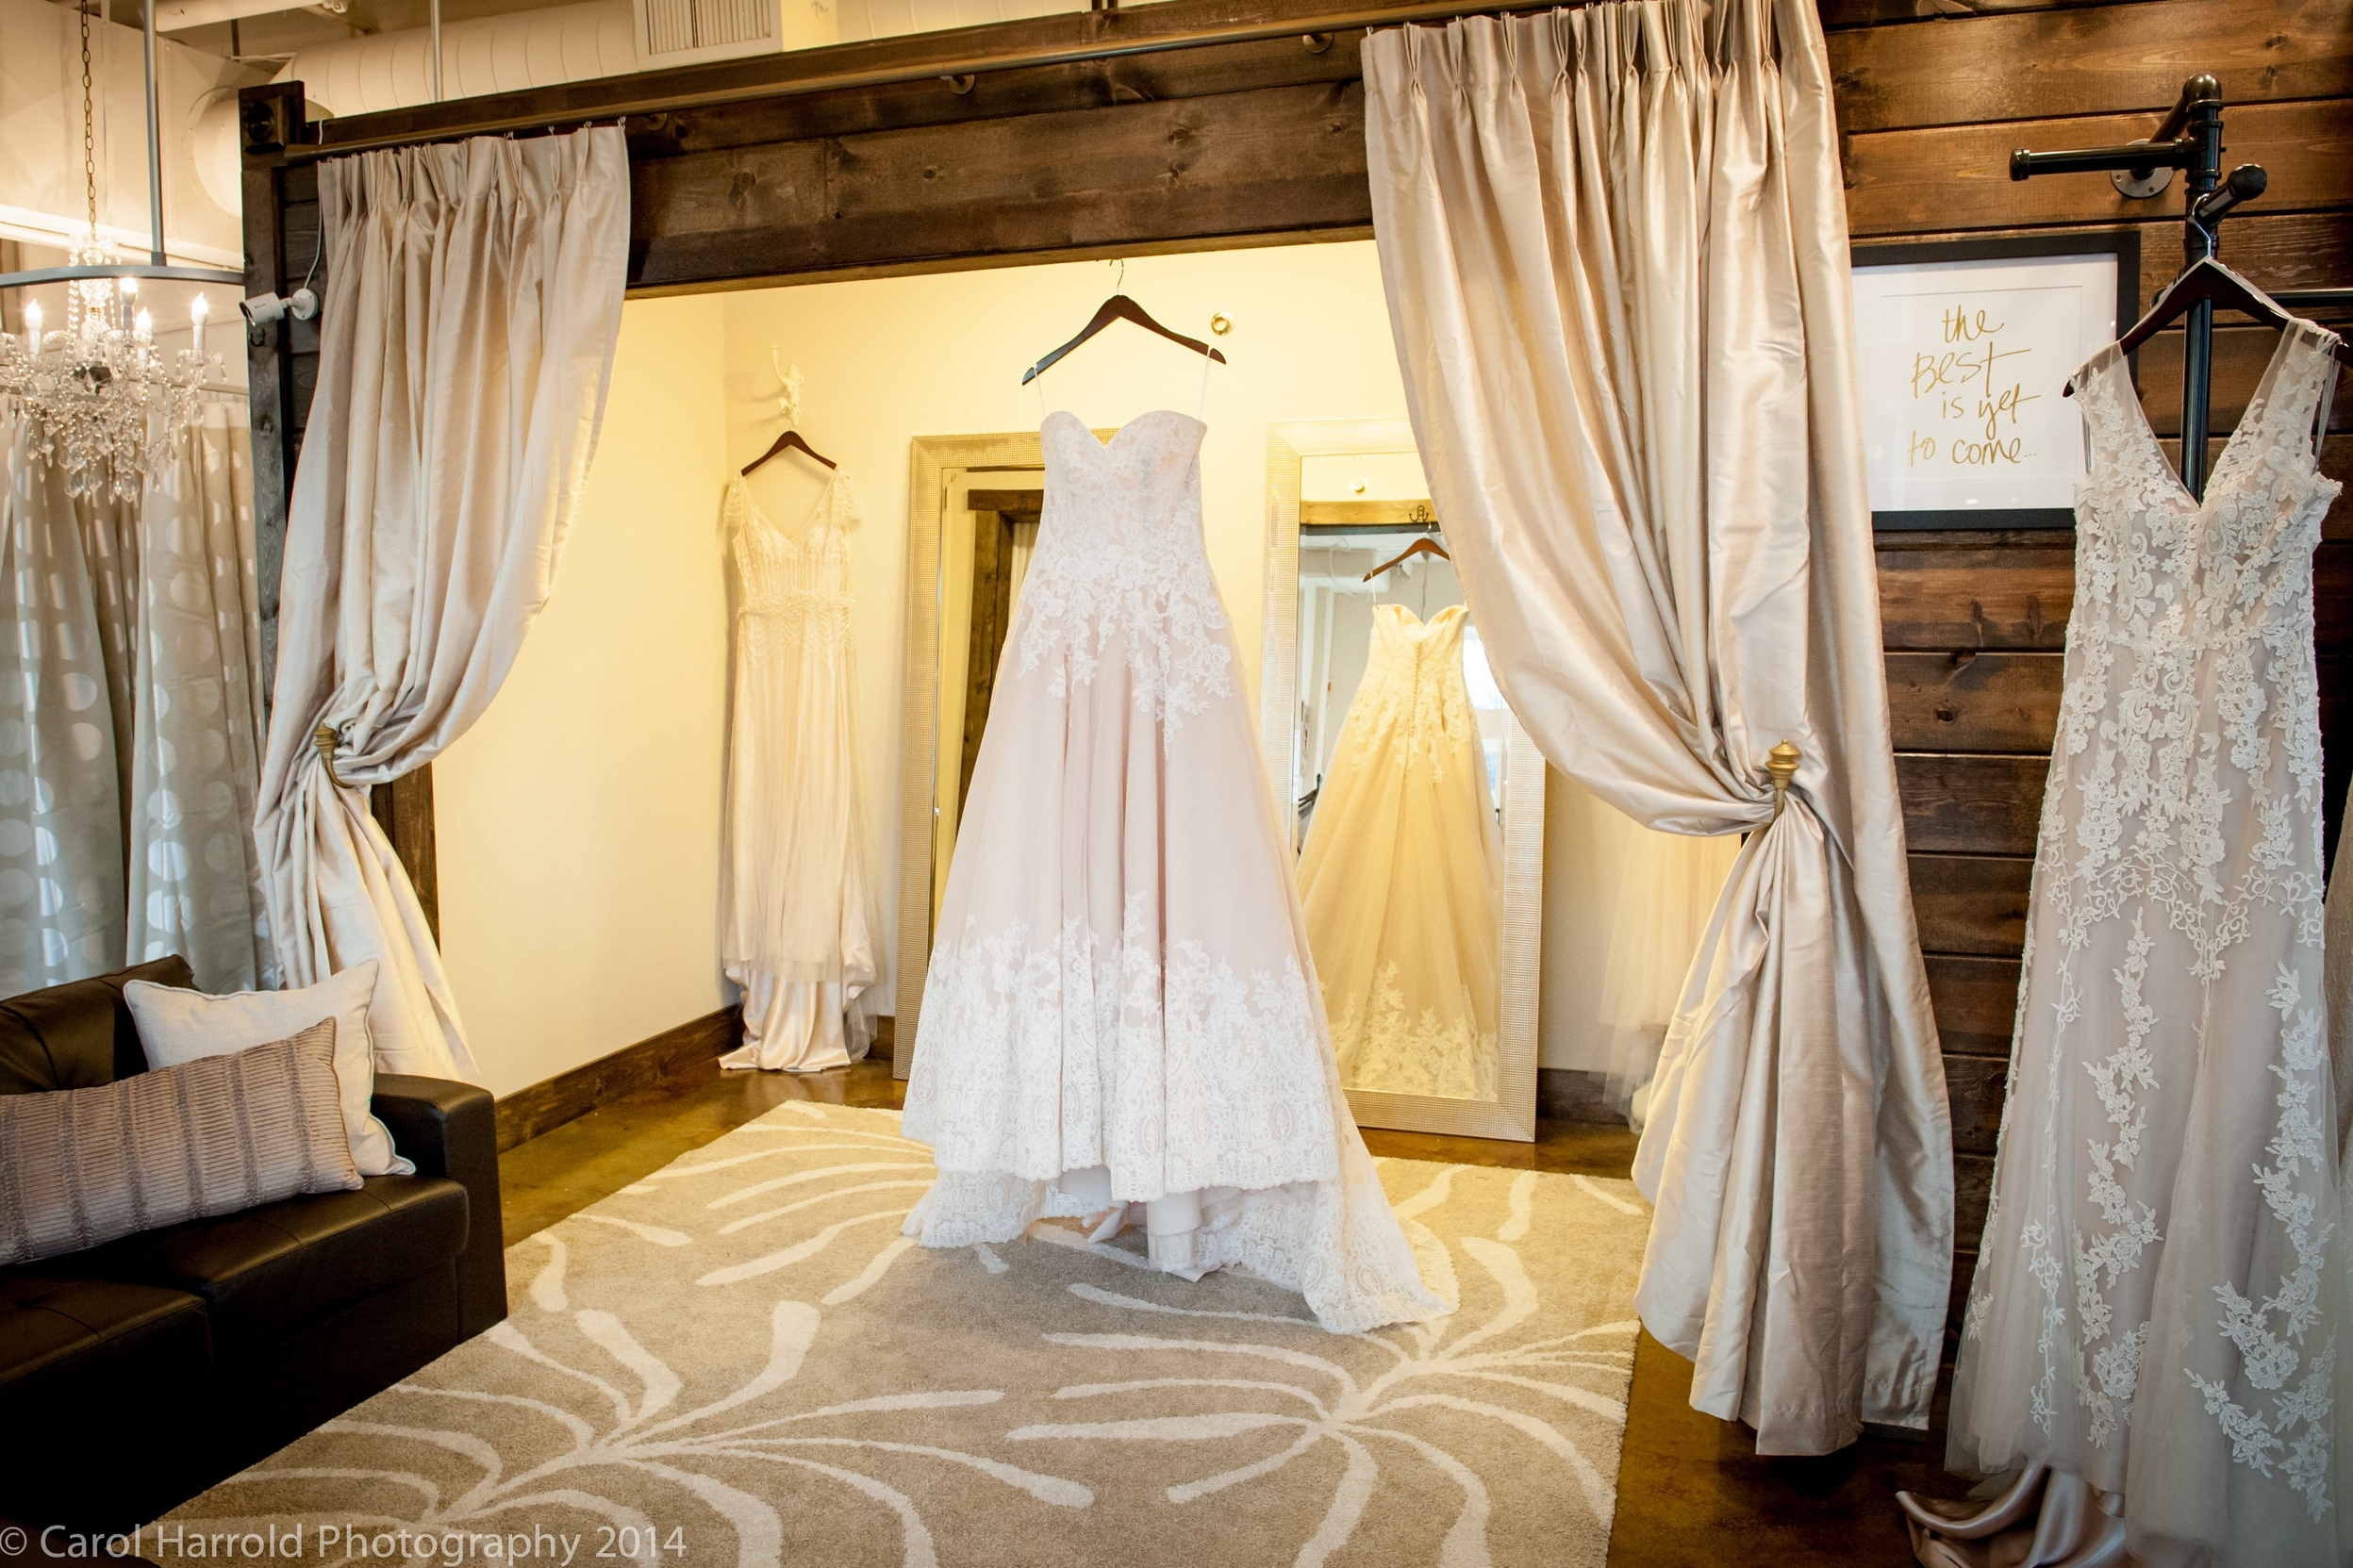 I Do Bridal (Sponsor)   206-633-7926   EMAIL   At I Do Bridal, our staff is here to personally assist you and your wedding party in selecting the perfect wedding day attire.